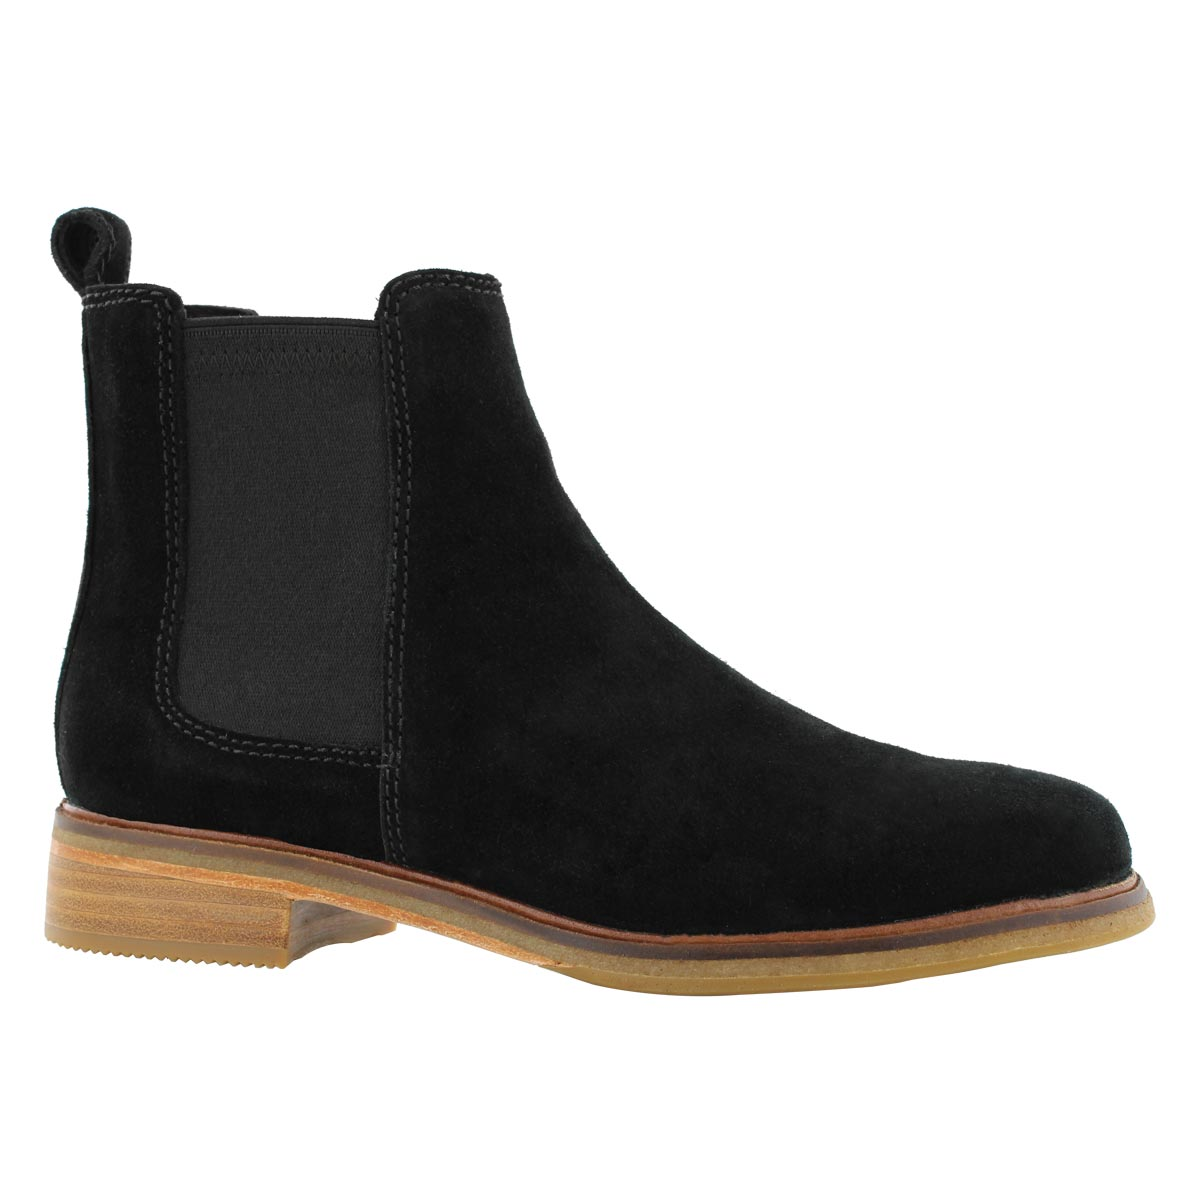 Lds Clarkdale Arlo black chelsea boot